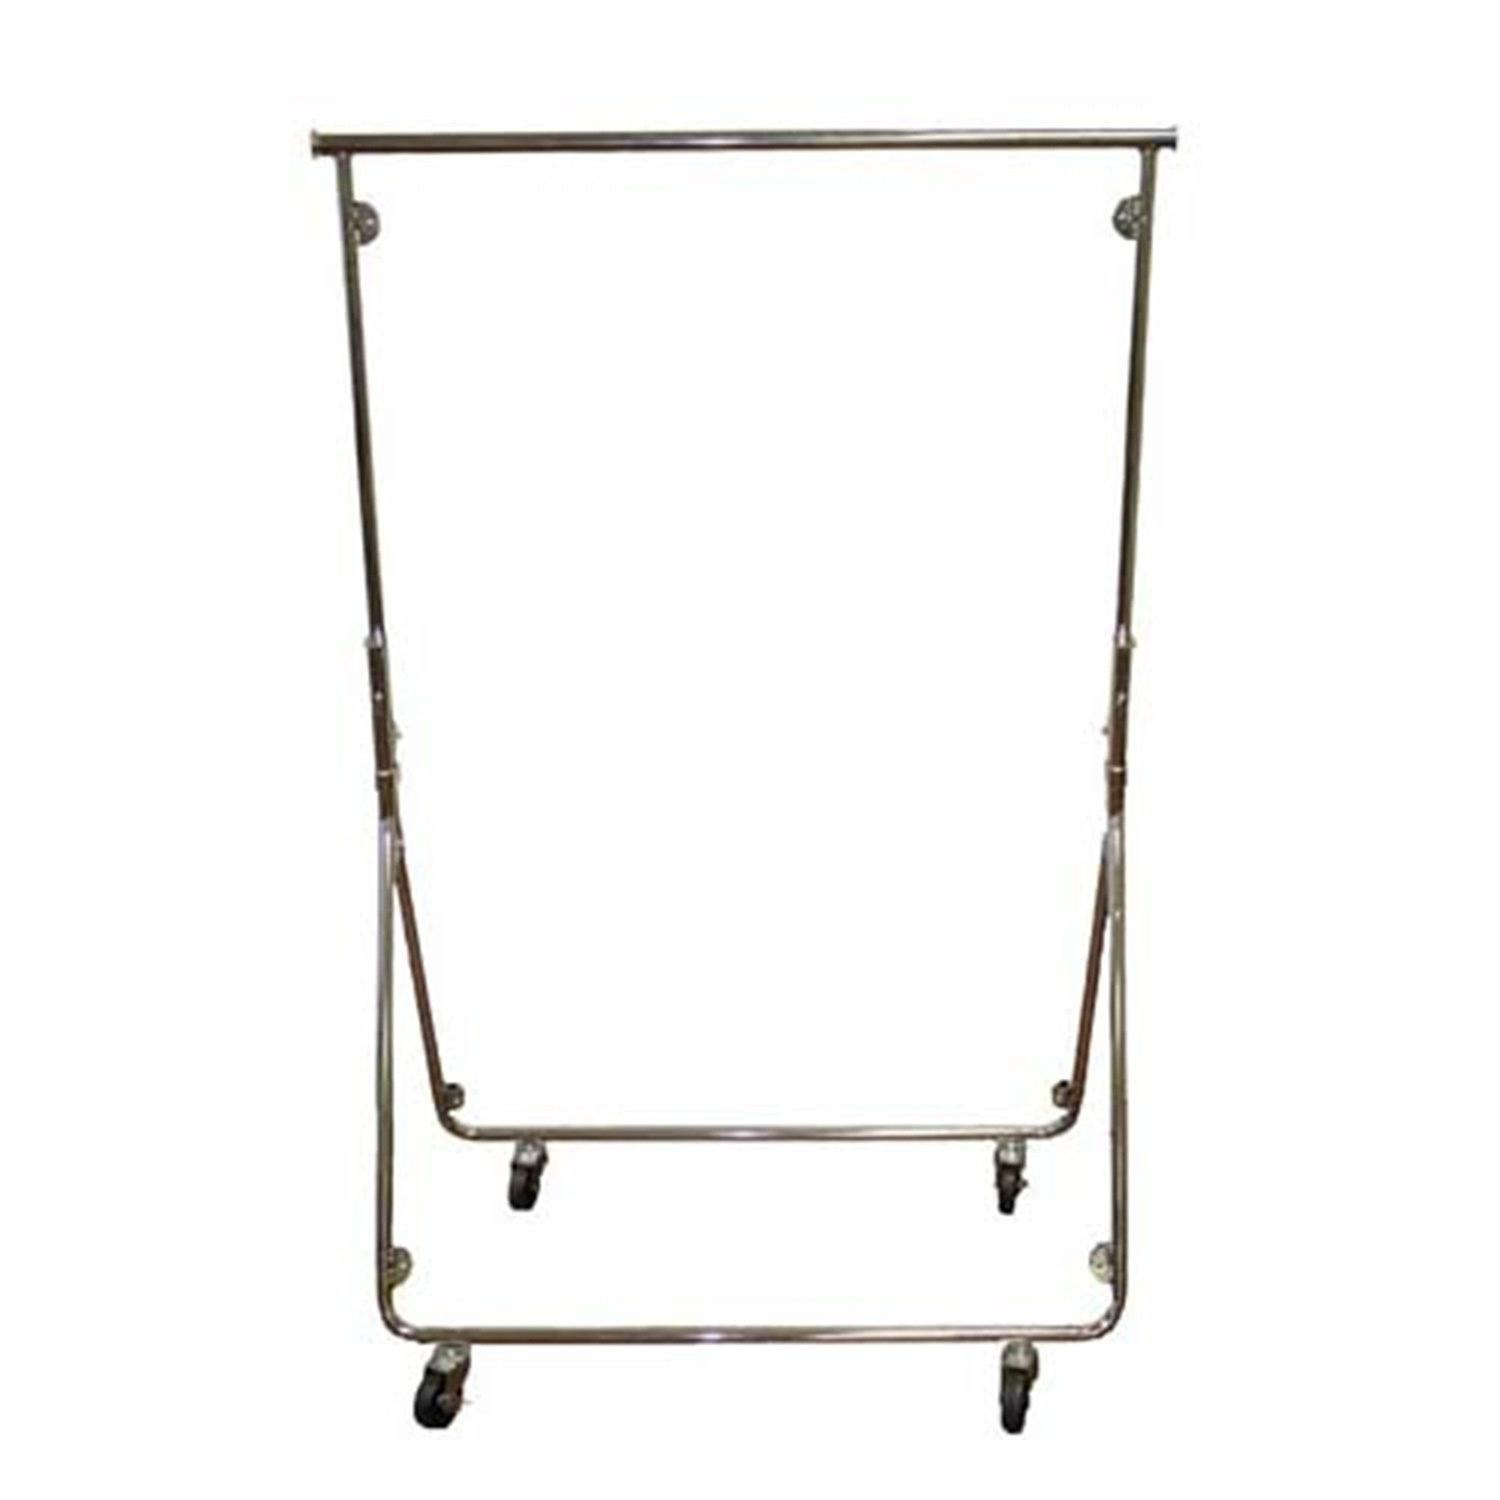 Totally Knockdown Rack With Pullouts - Display Fixture Warehouse Retail